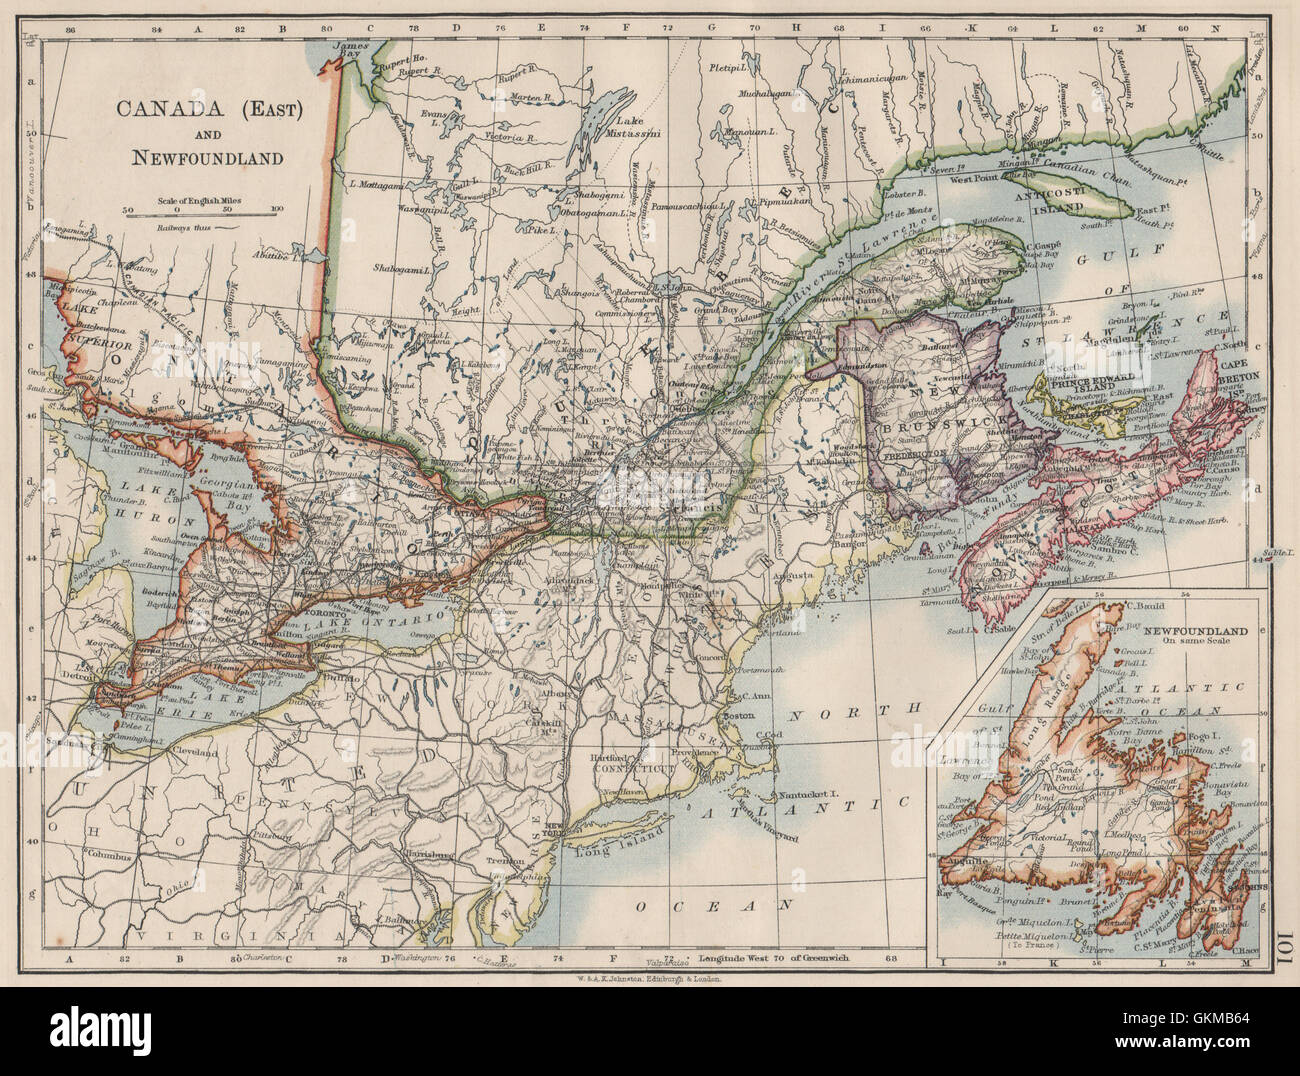 EASTERN CANADA. Ontario Quebec Maritime Provinces NB PE NS ... on map of northeastern quebec, map of longueuil quebec, map of manitoba, map of cornwall, valleyfield quebec, map of western quebec, map of south central us, new france quebec, map of montreal, map of gaspe quebec, map of quebec city, map of big bear area, map of saskatchewan, map of ontario, physical map of quebec, map of southern quebec, lachine quebec, map of quebec ca, outline map of quebec, map of quebec province,